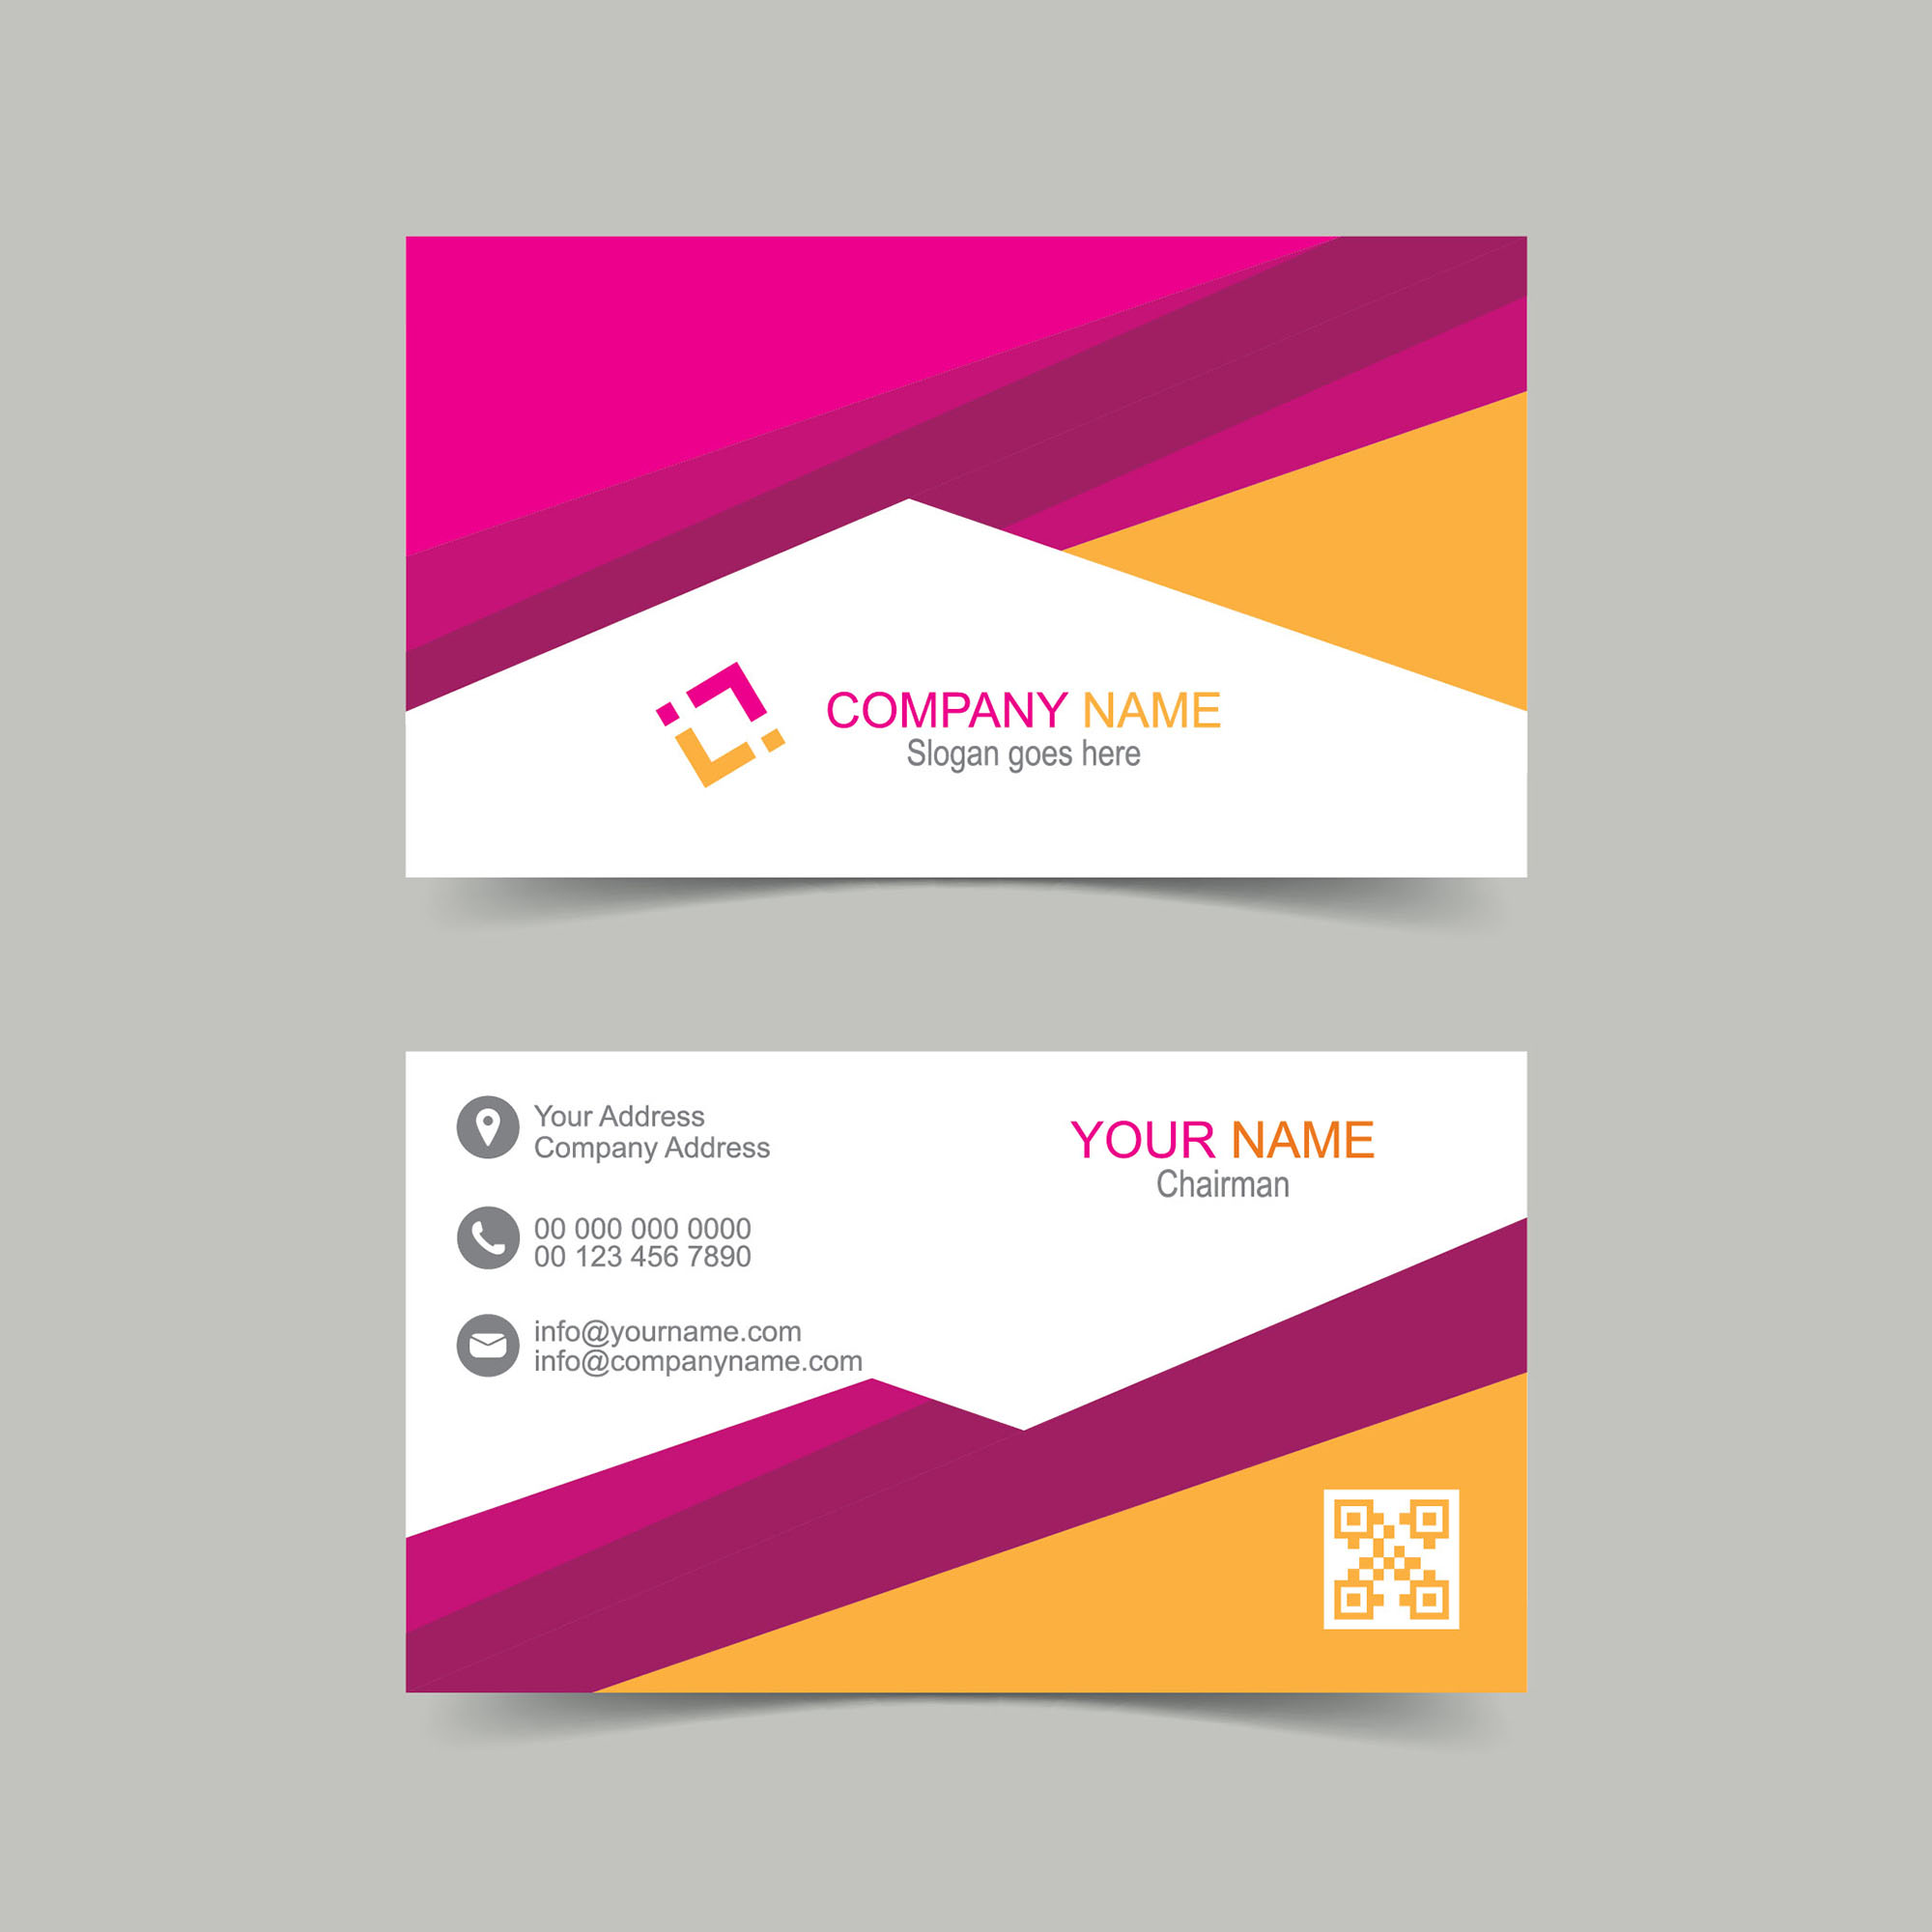 Vector business card design free download wisxi business card business cards business card design business card template design templates flashek Gallery